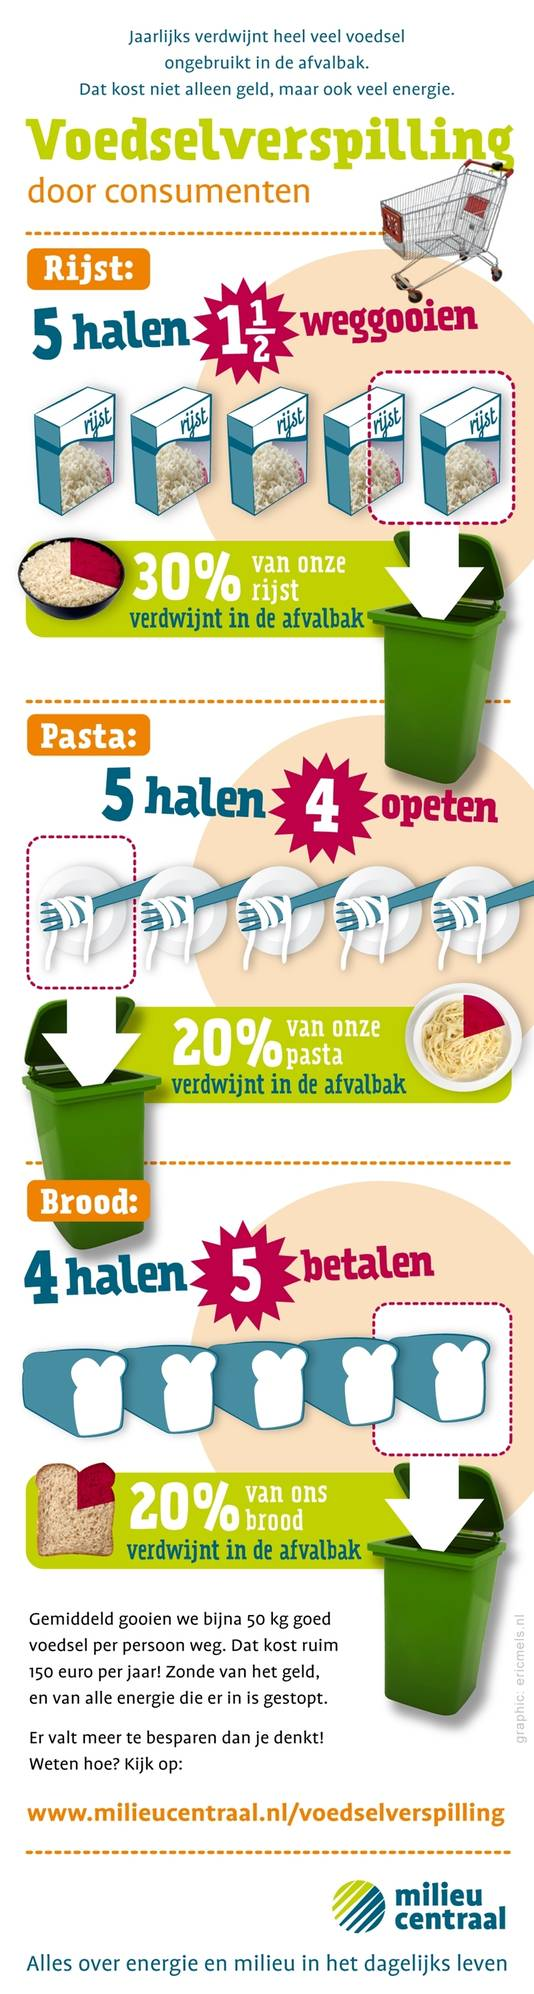 Infographic Milieucentraal.nl